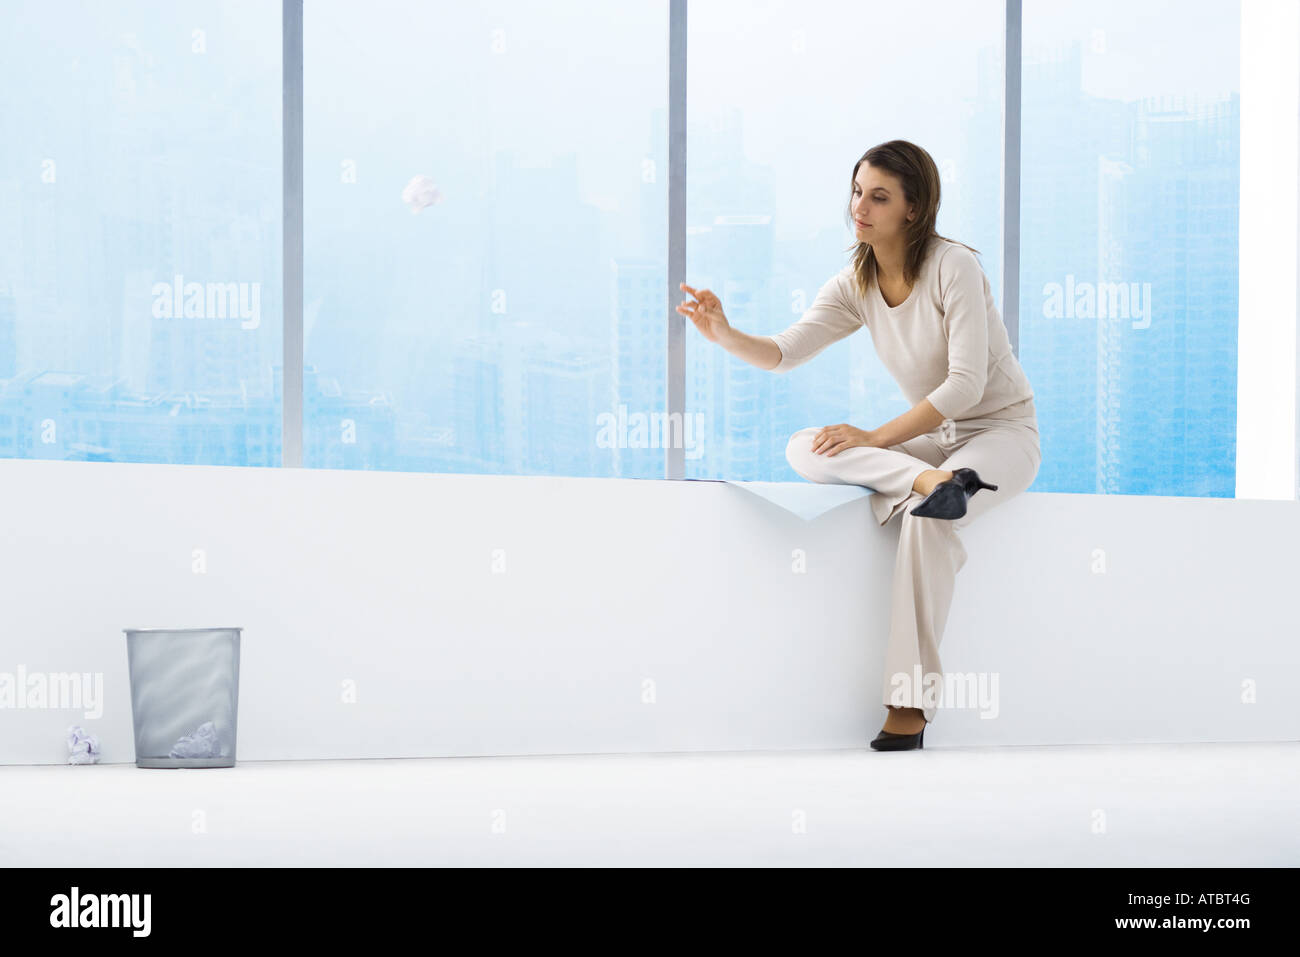 Woman throwing paper ball toward trash can - Stock Image